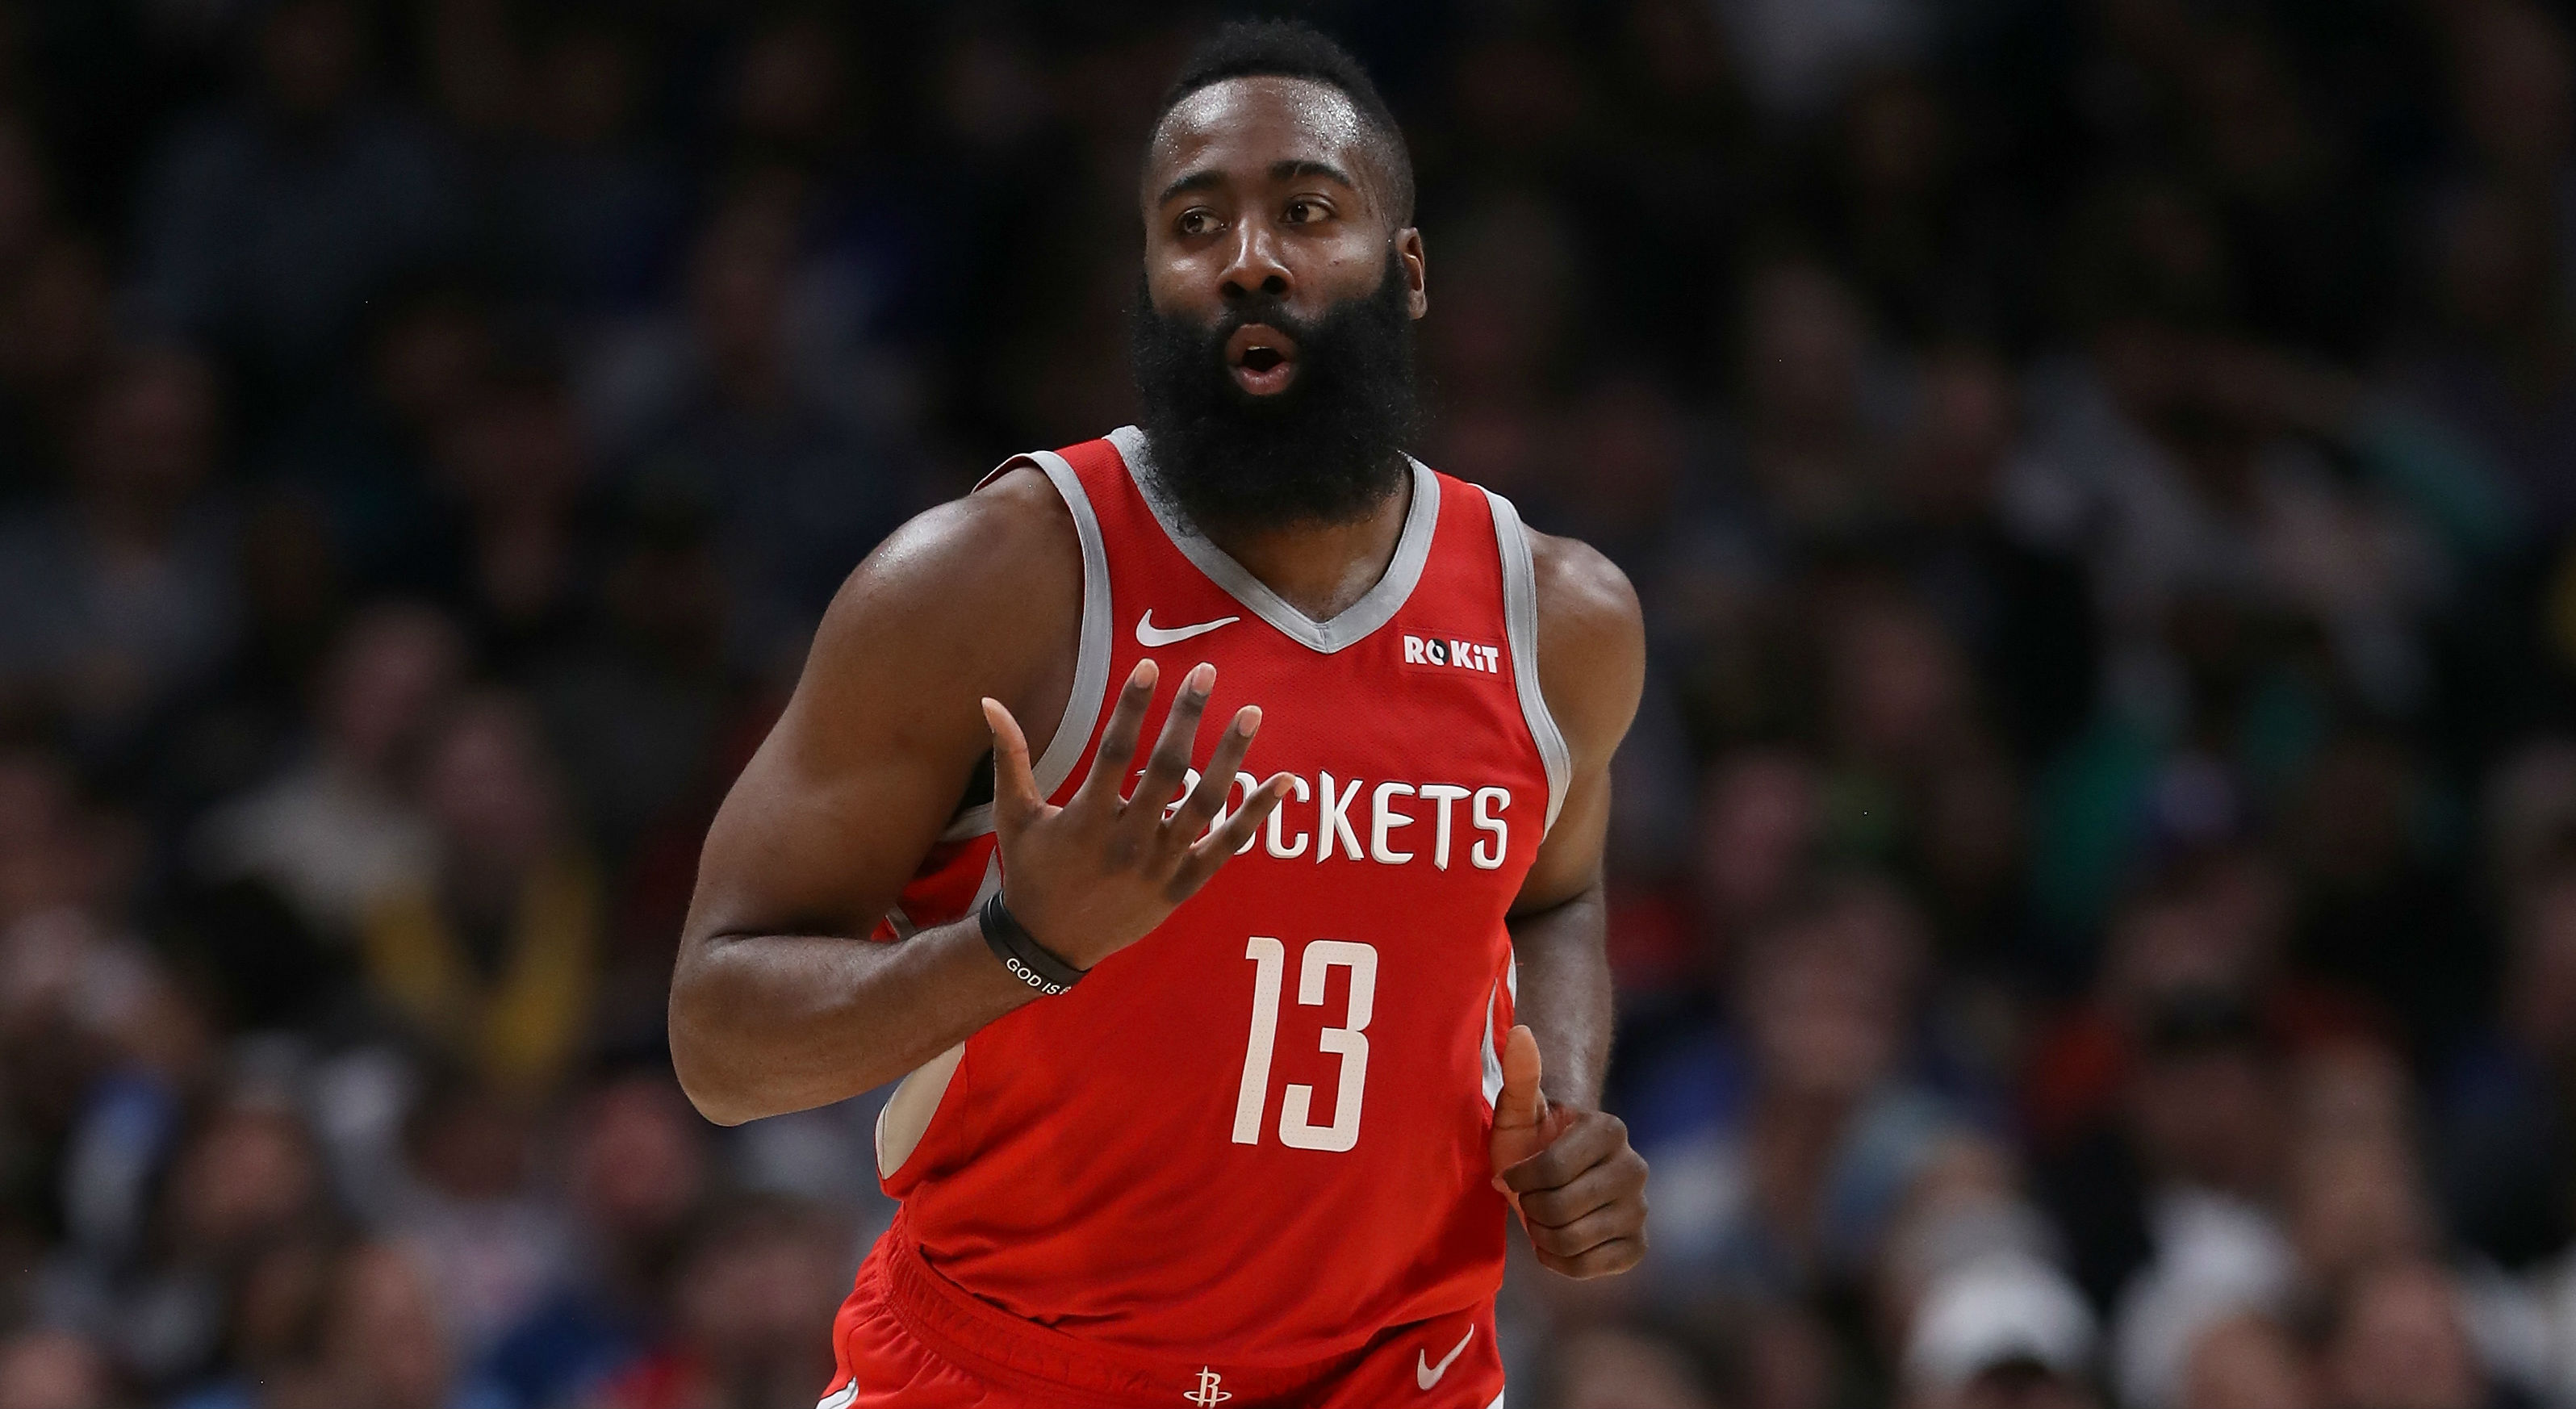 Rockets GM: James Harden Maybe the 'Best Offensive Player of All Time'